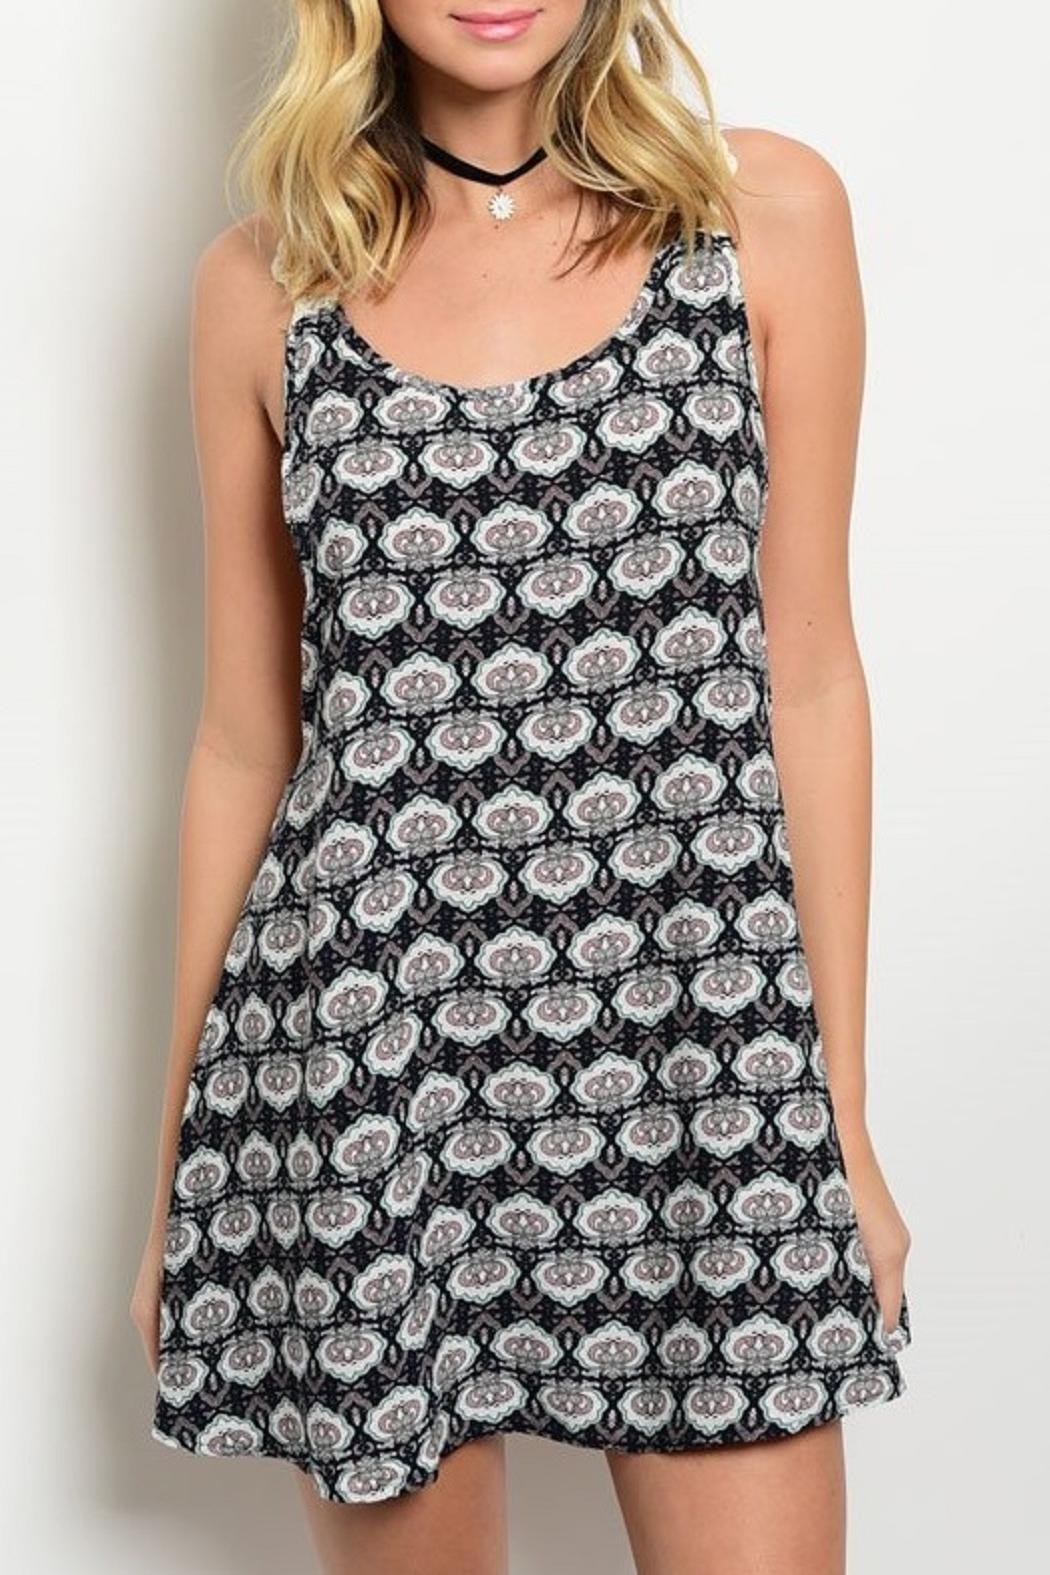 Adore Clothes & More Patterned Summer Dress - Main Image